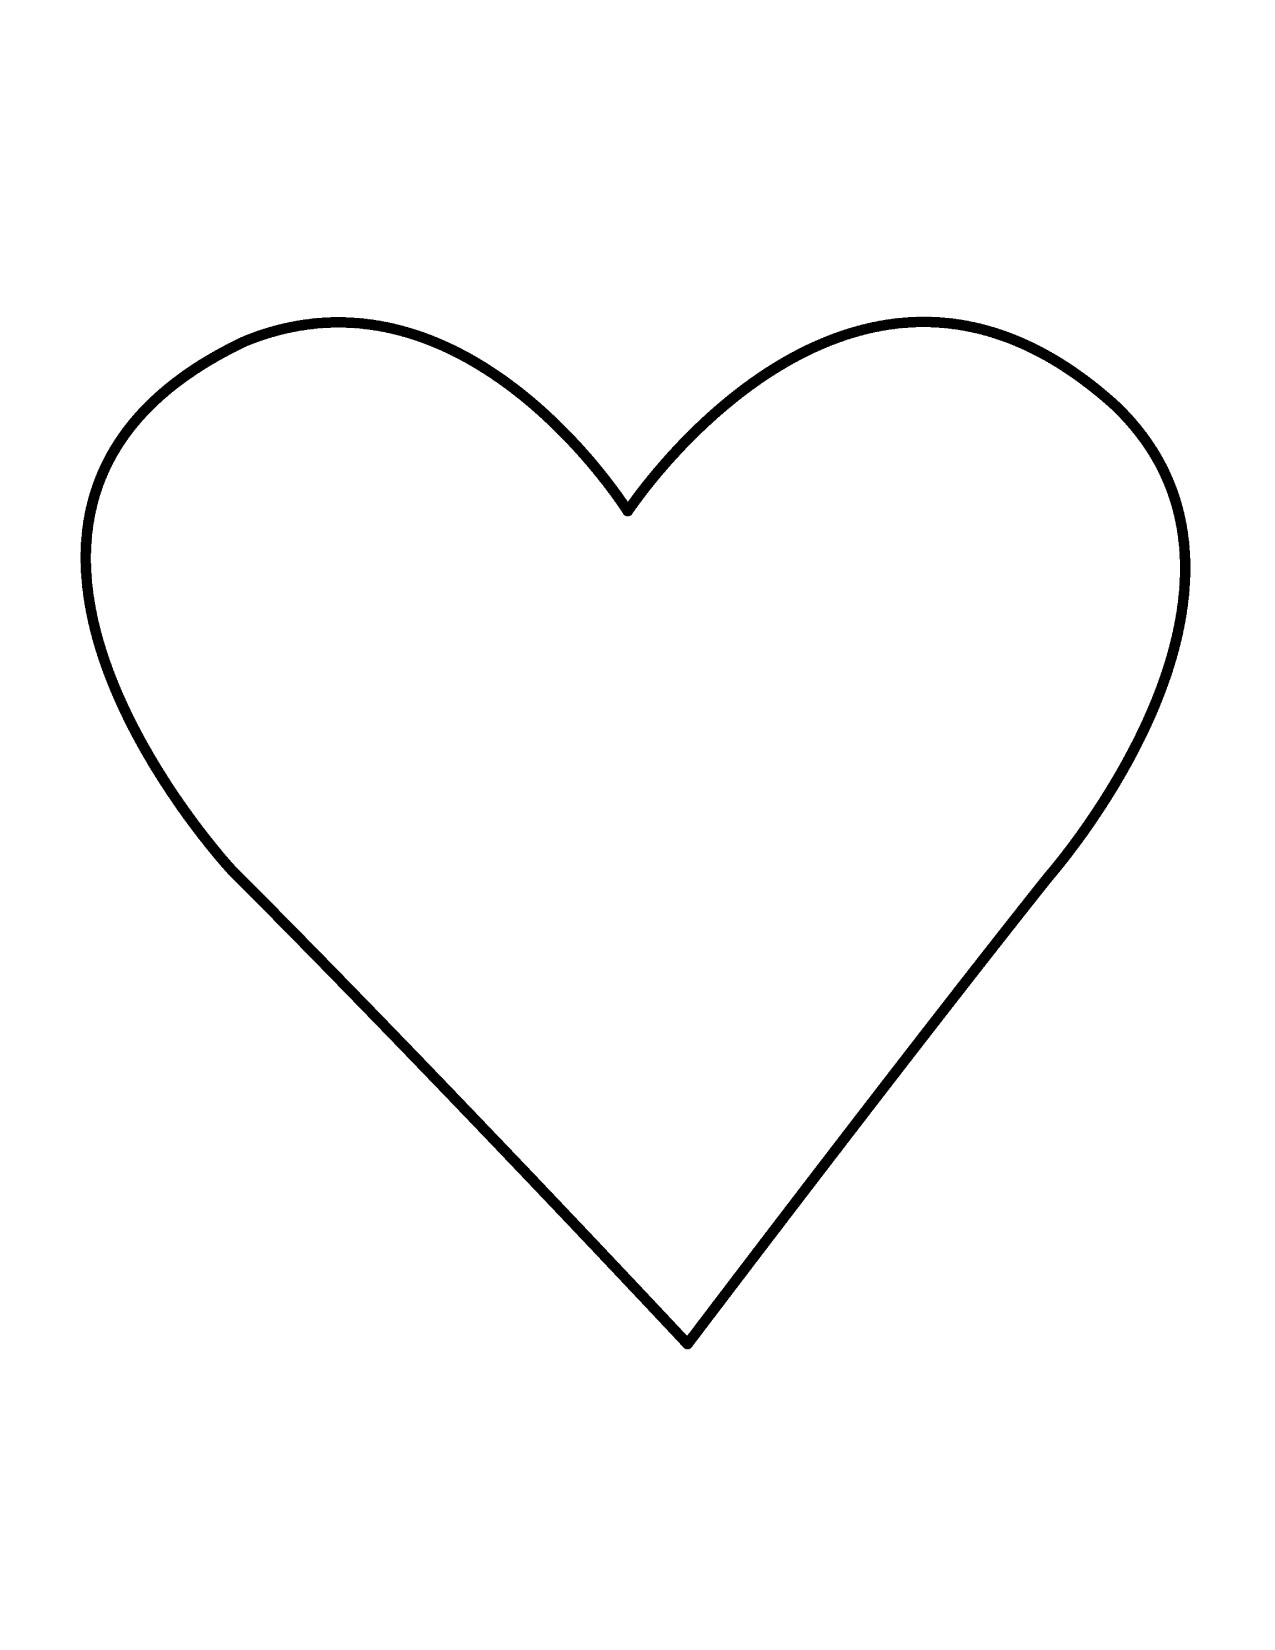 Black Heart Clipart Clipart heart